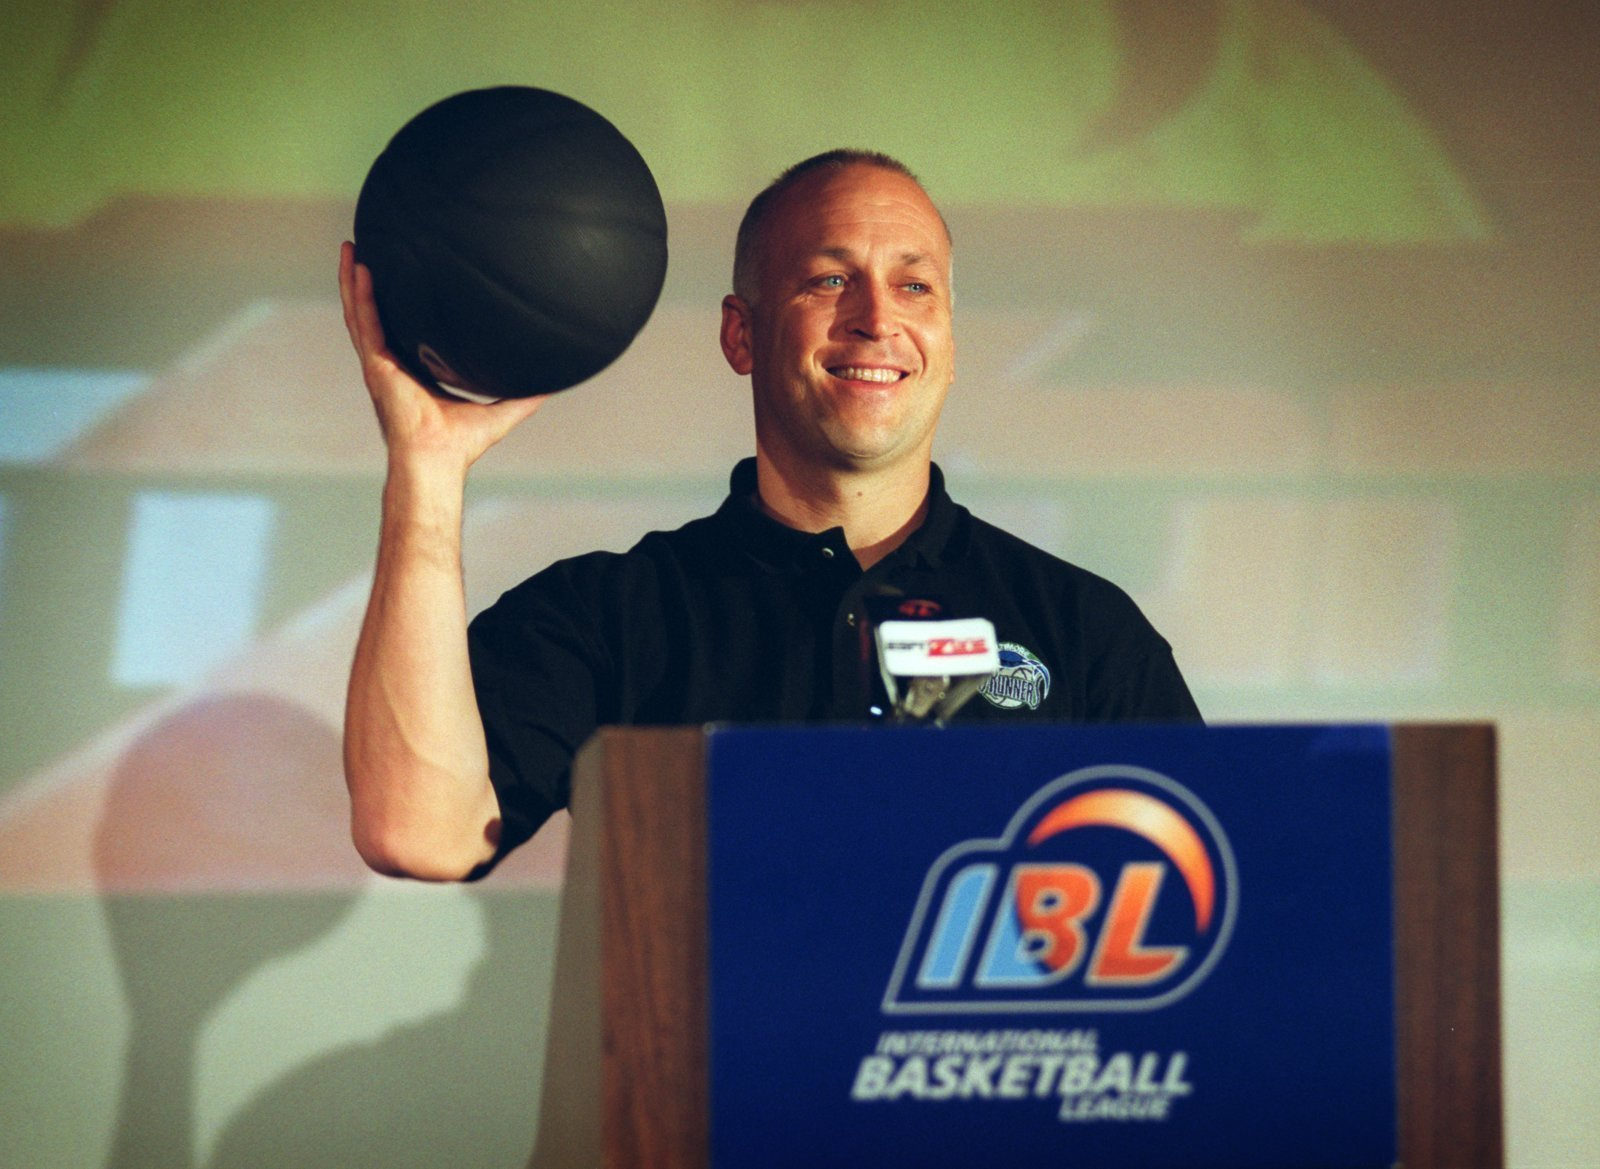 Cal Ripken Jr.'s pickup hoops games seemed fun, unless you were Tim Kurkjian